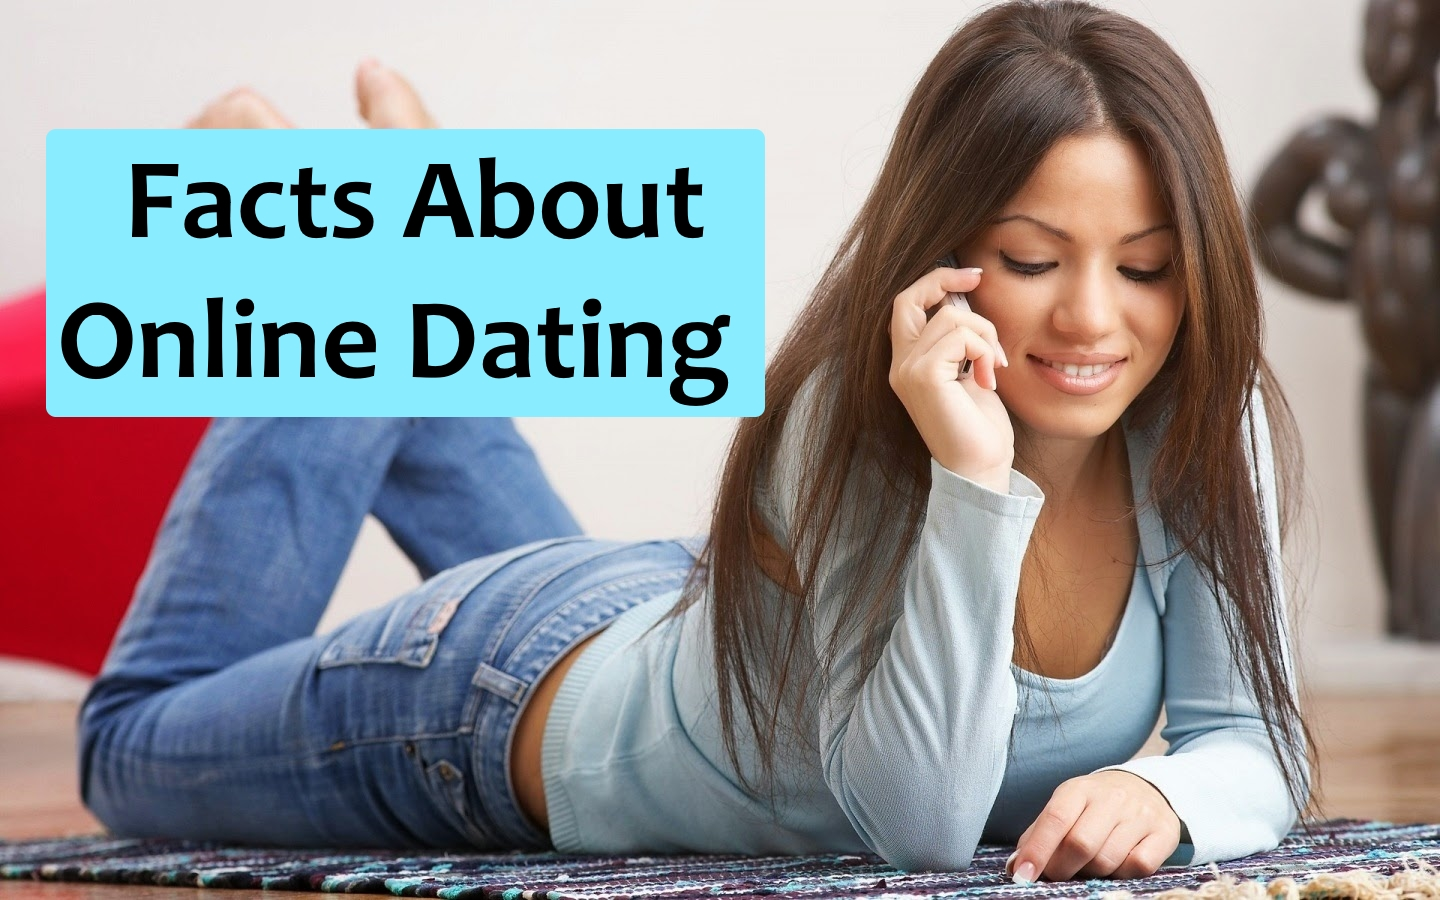 nunn online dating Nunn's best free dating site 100% free online dating for nunn singles at mingle2com our free personal ads are full of single women and men in nunn looking for serious relationships, a little online flirtation, or new friends to go out with.